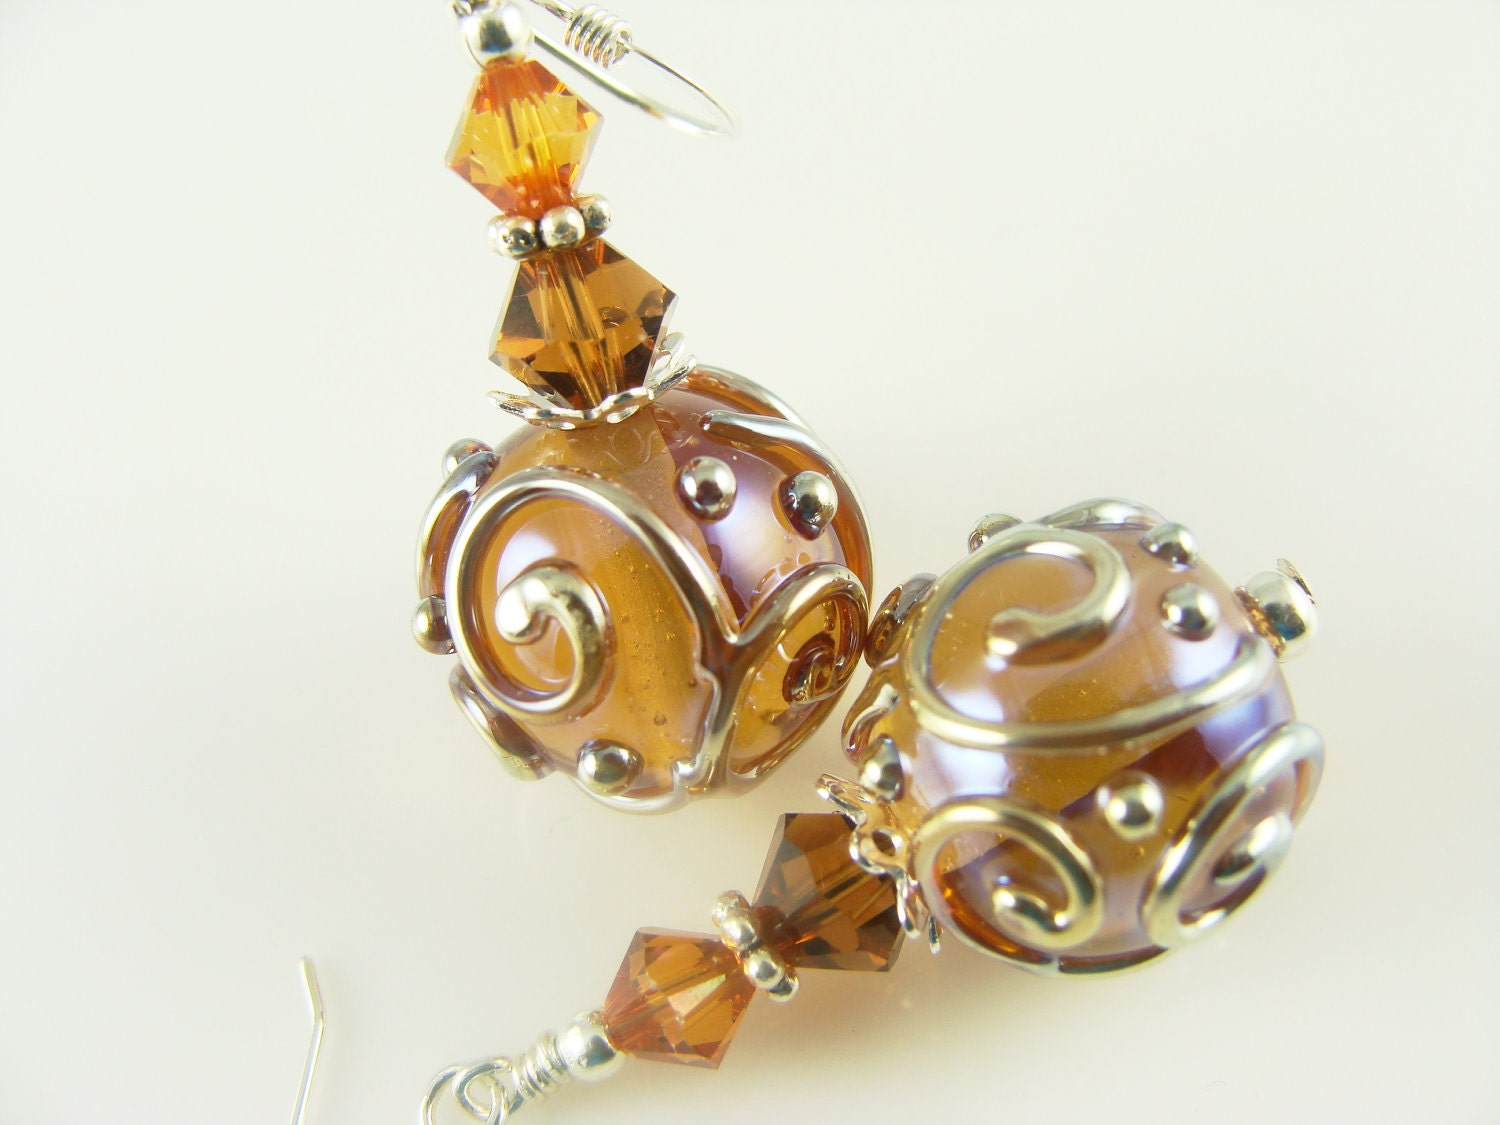 Amber Brown Lampwork Earrings, Dangle Earrings, Glass Bead Earrings, Lampwork Jewelry, Beaded Earrings, Silver Earrings